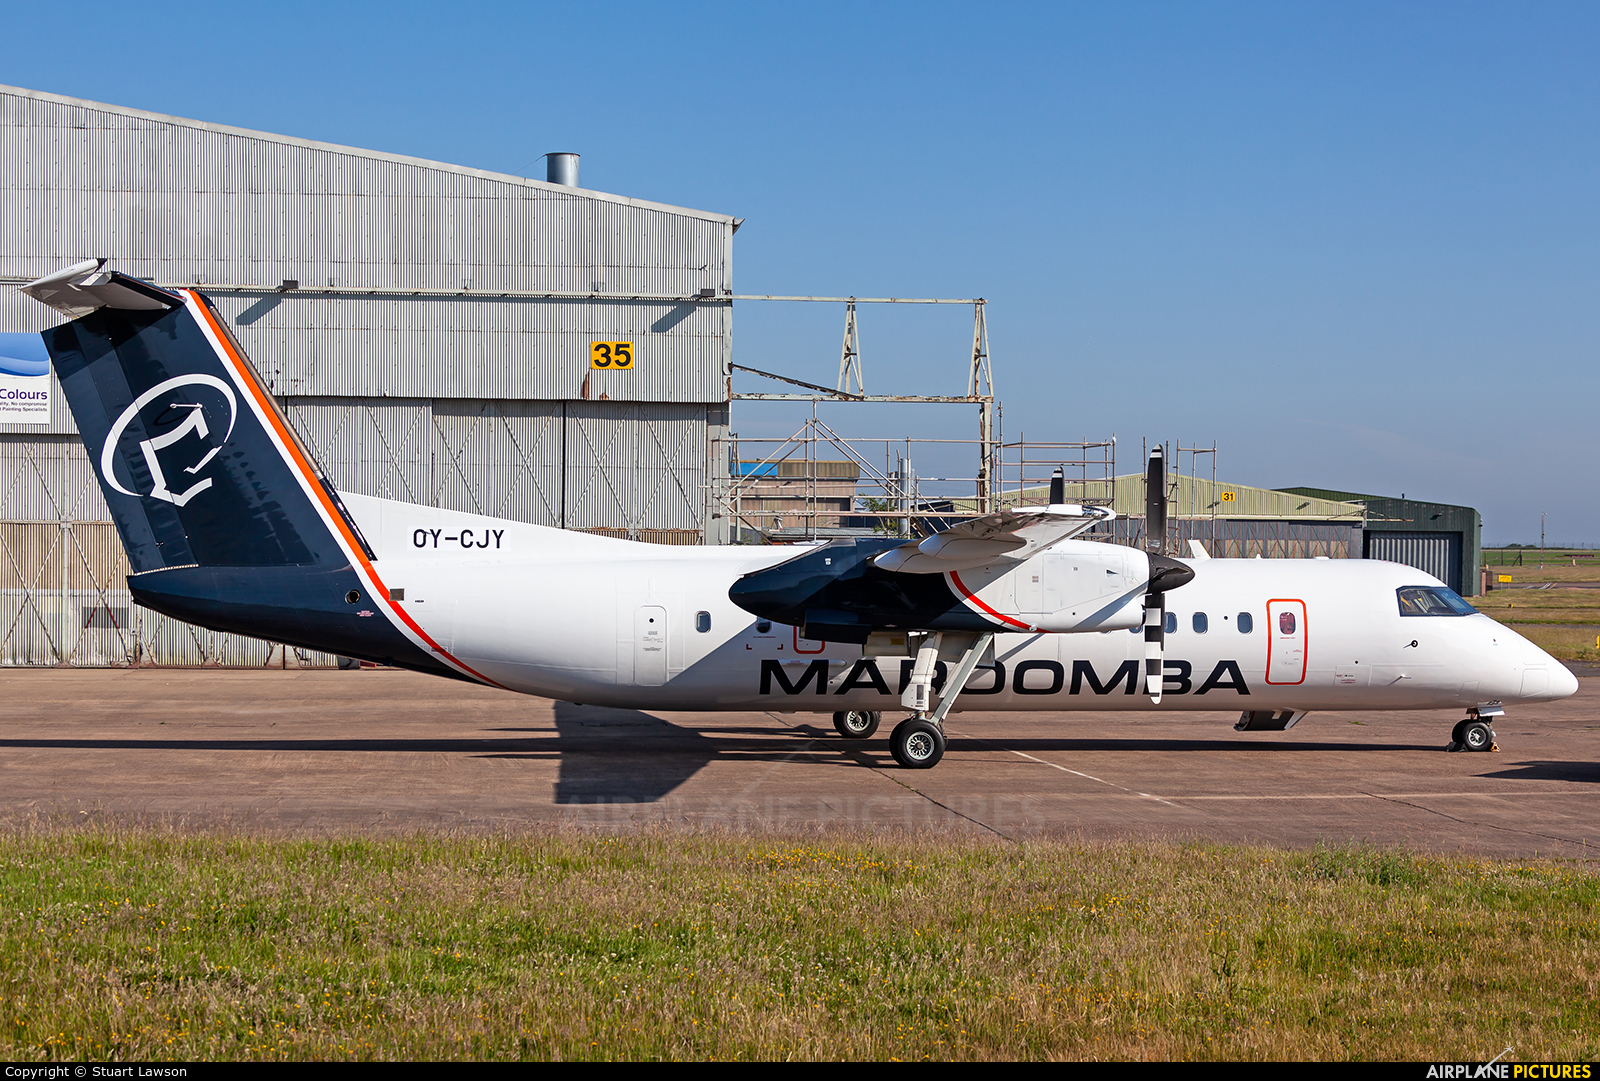 Maroomba Airlines OY-CJY aircraft at East Midlands